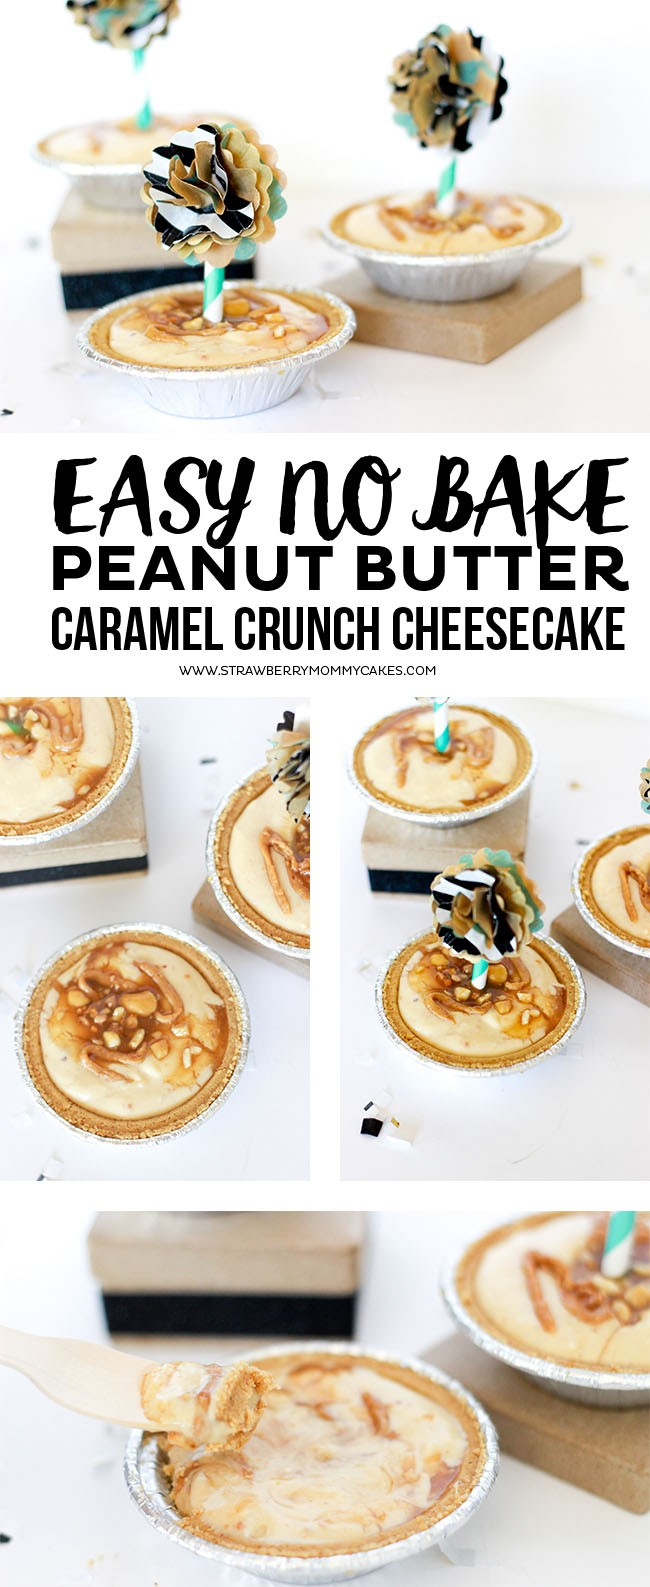 This Easy No Bake Peanut Butter Caramel Crunch Cheesecake recipe is the perfect Fall treat!